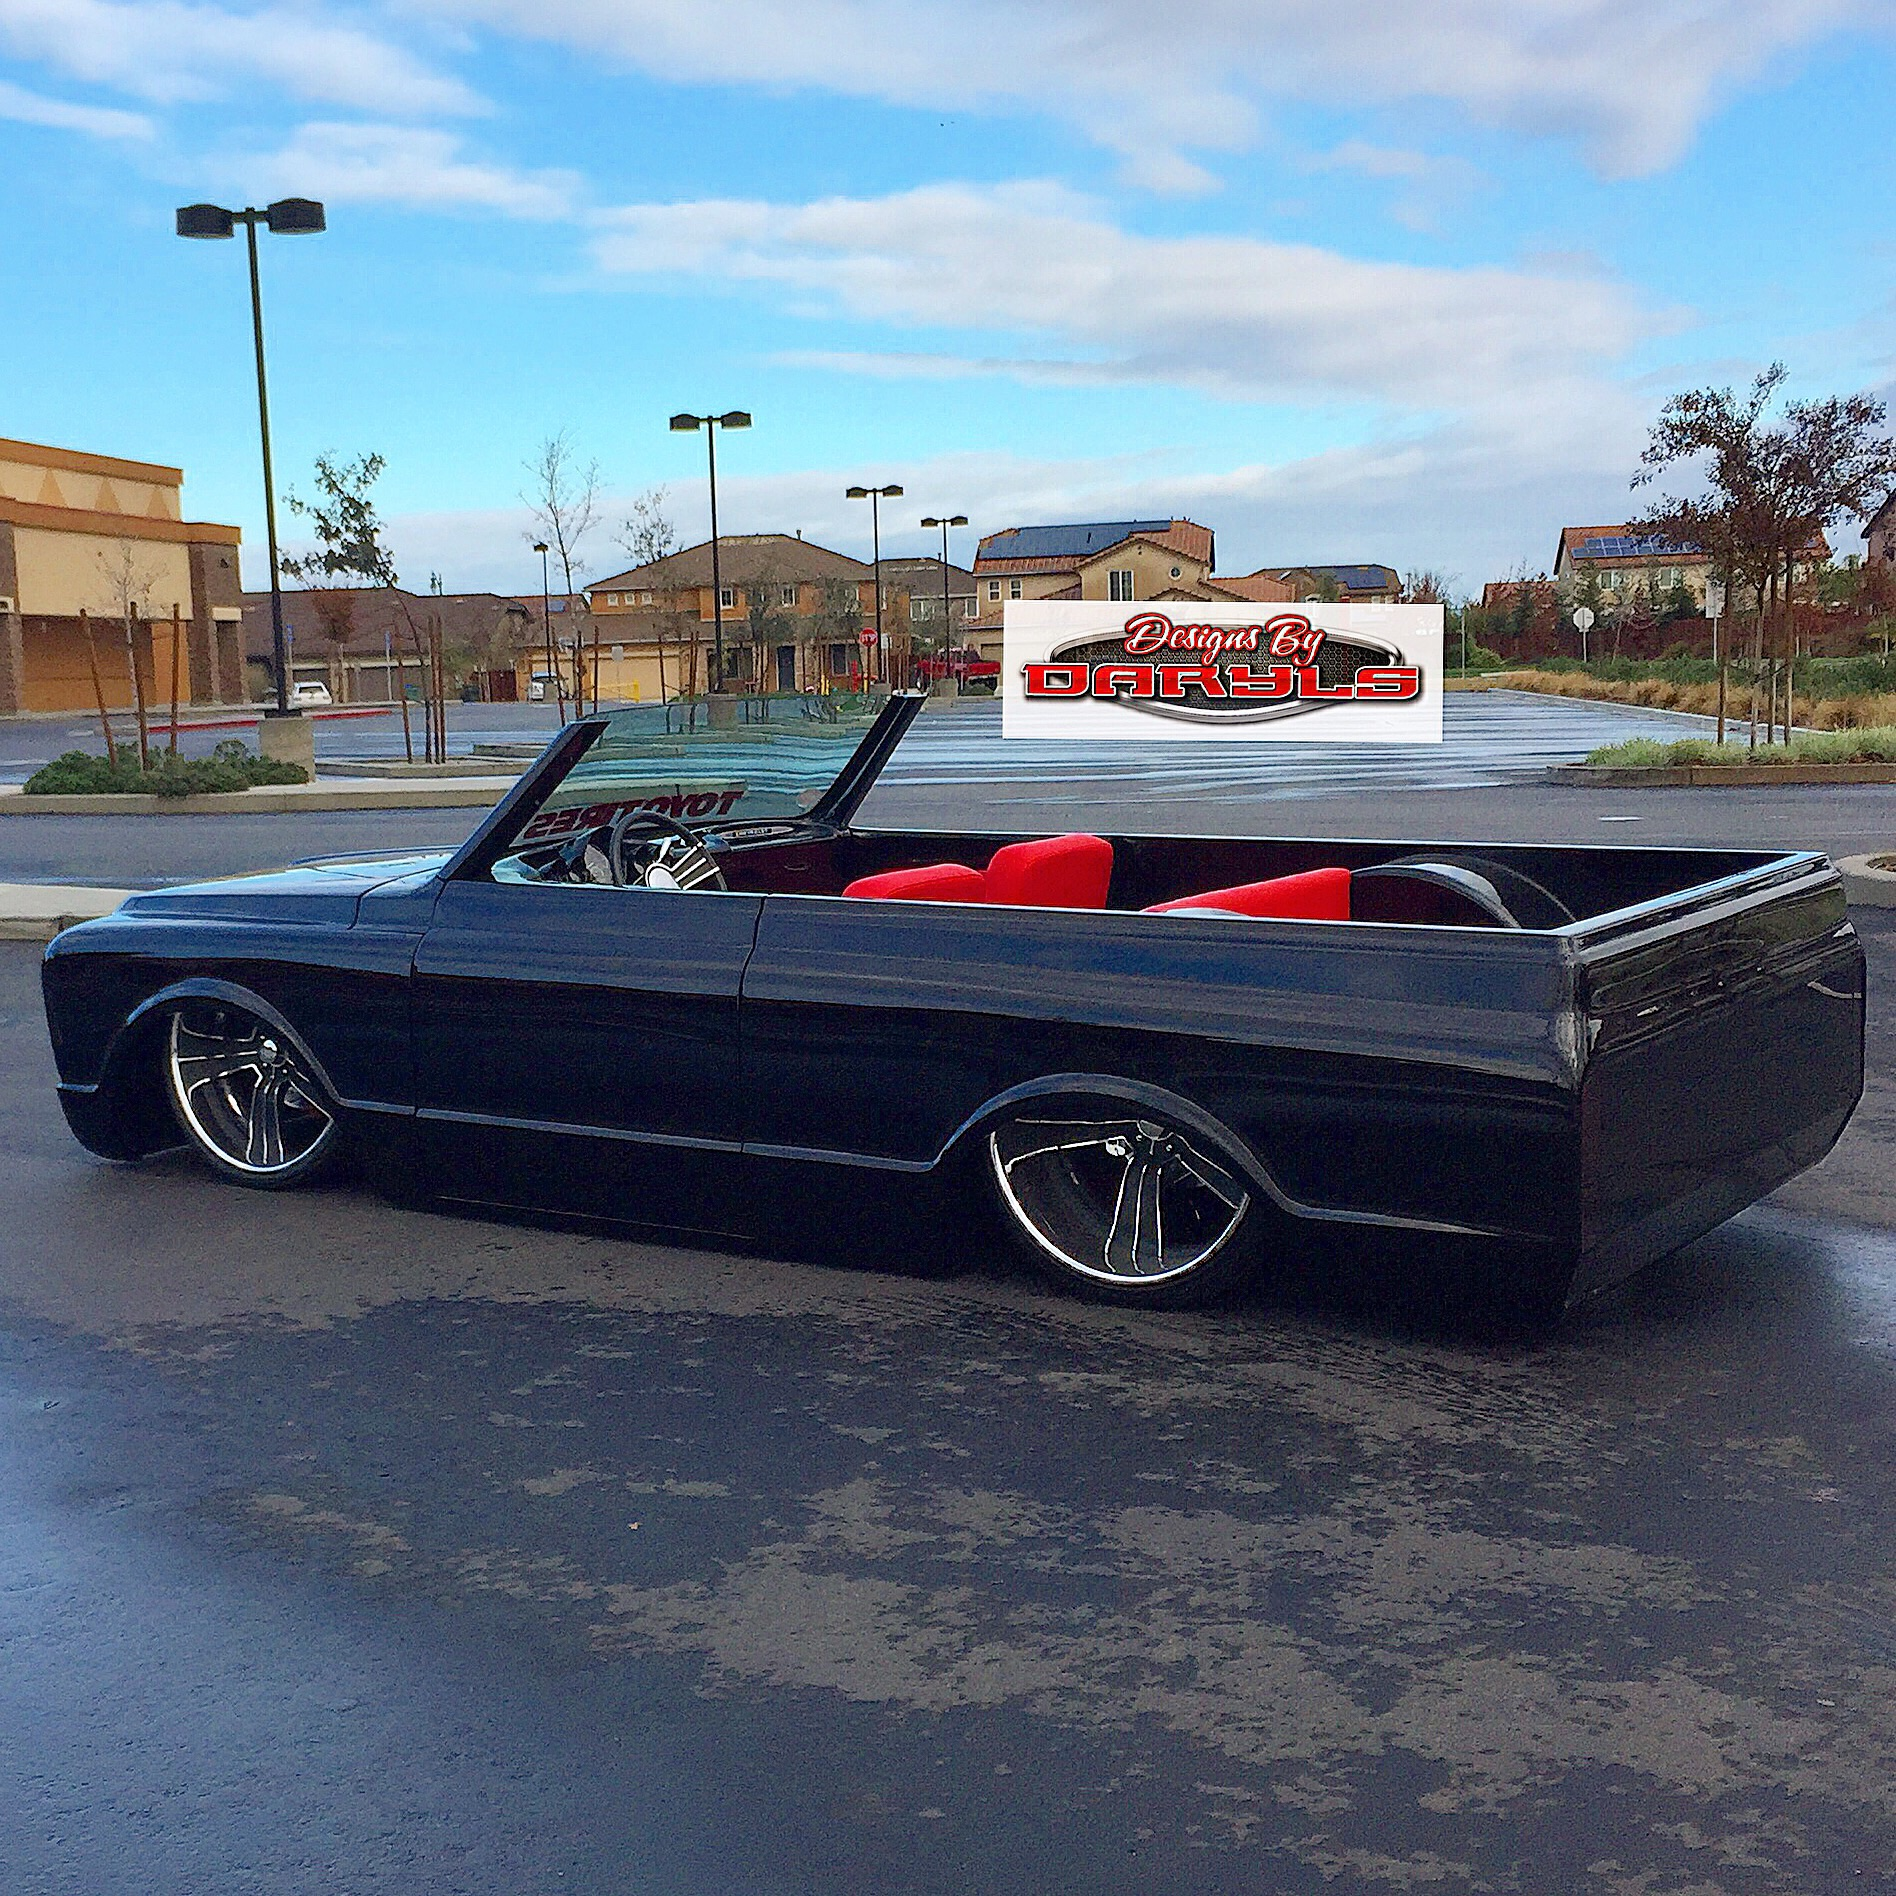 Severed Ties 1965 Cadillac Coupe Deville